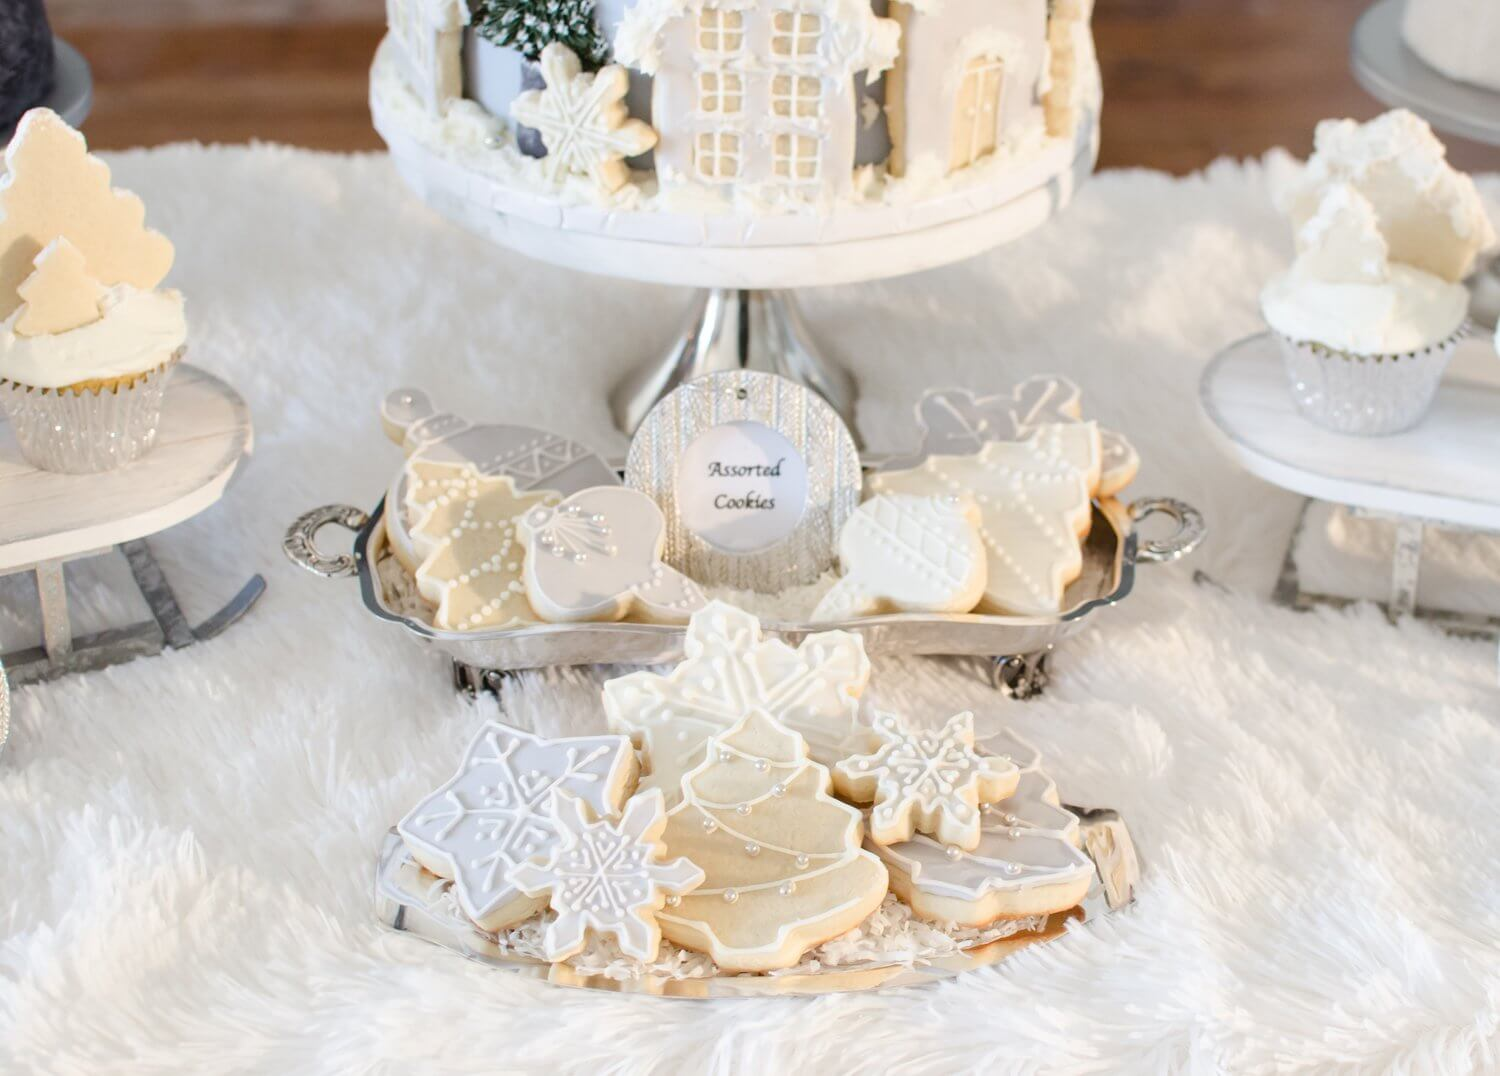 Winter Bridal Shower Dessert Table with cookies frosted in white and grey icing. See more ideas from this Winter Wonderland themed Bridal Shower Inspiration created by Mint Event Design www.minteventdesign.com #winterweddingideas #weddingwedding #bridalshowerideas #winterwonderland #wintercake #weddingcookies